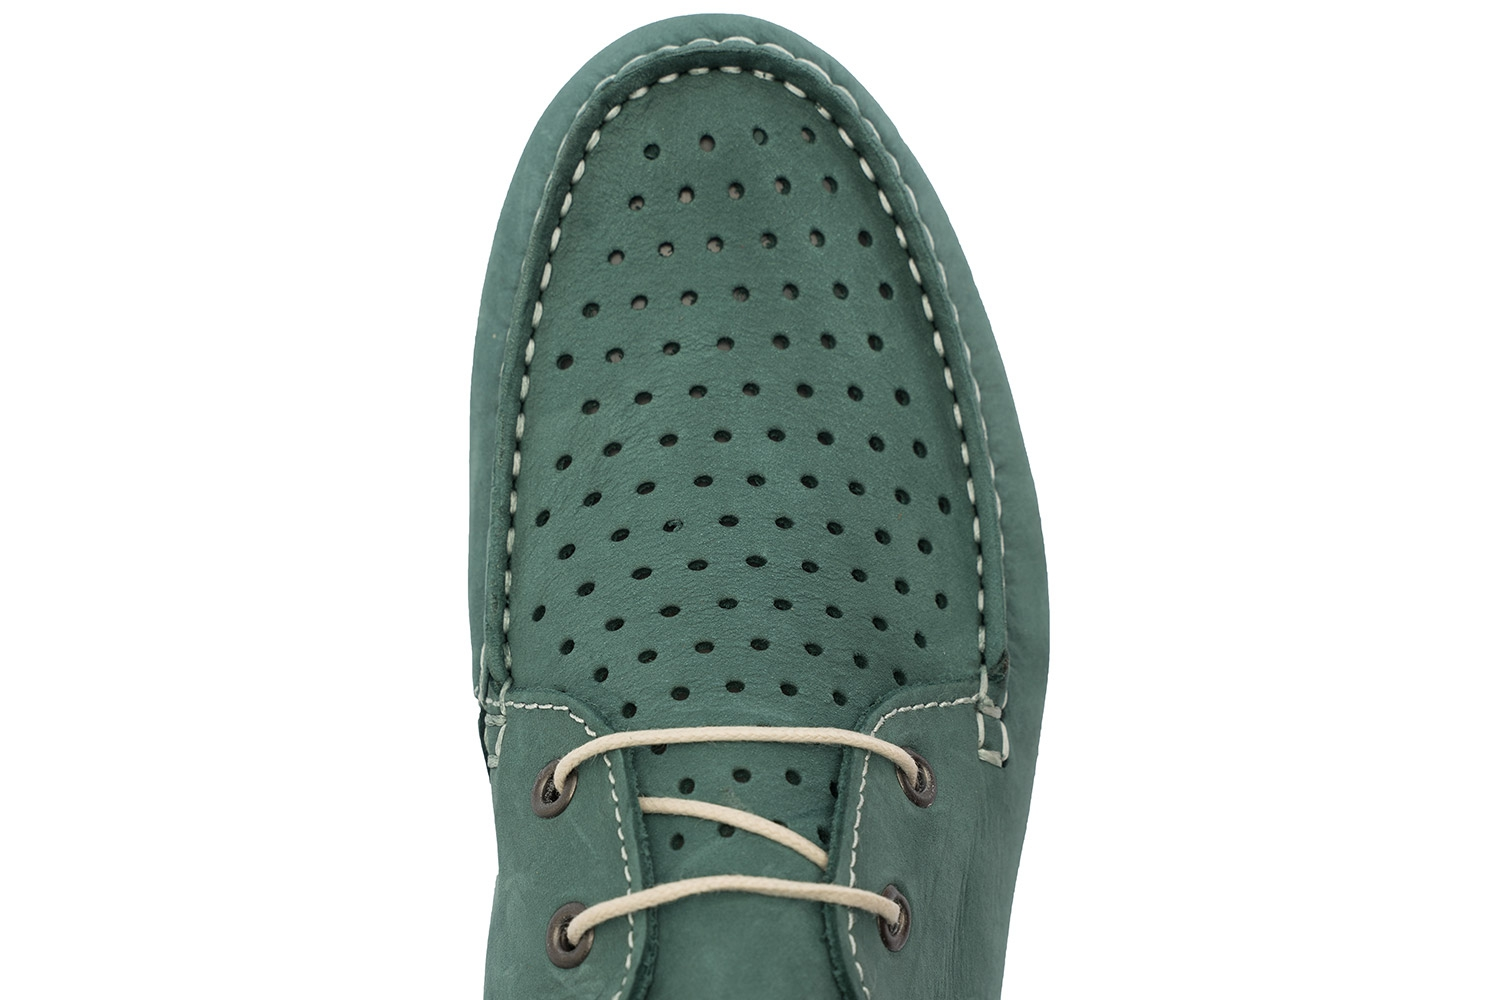 Green Nubuck leather Shoes 3